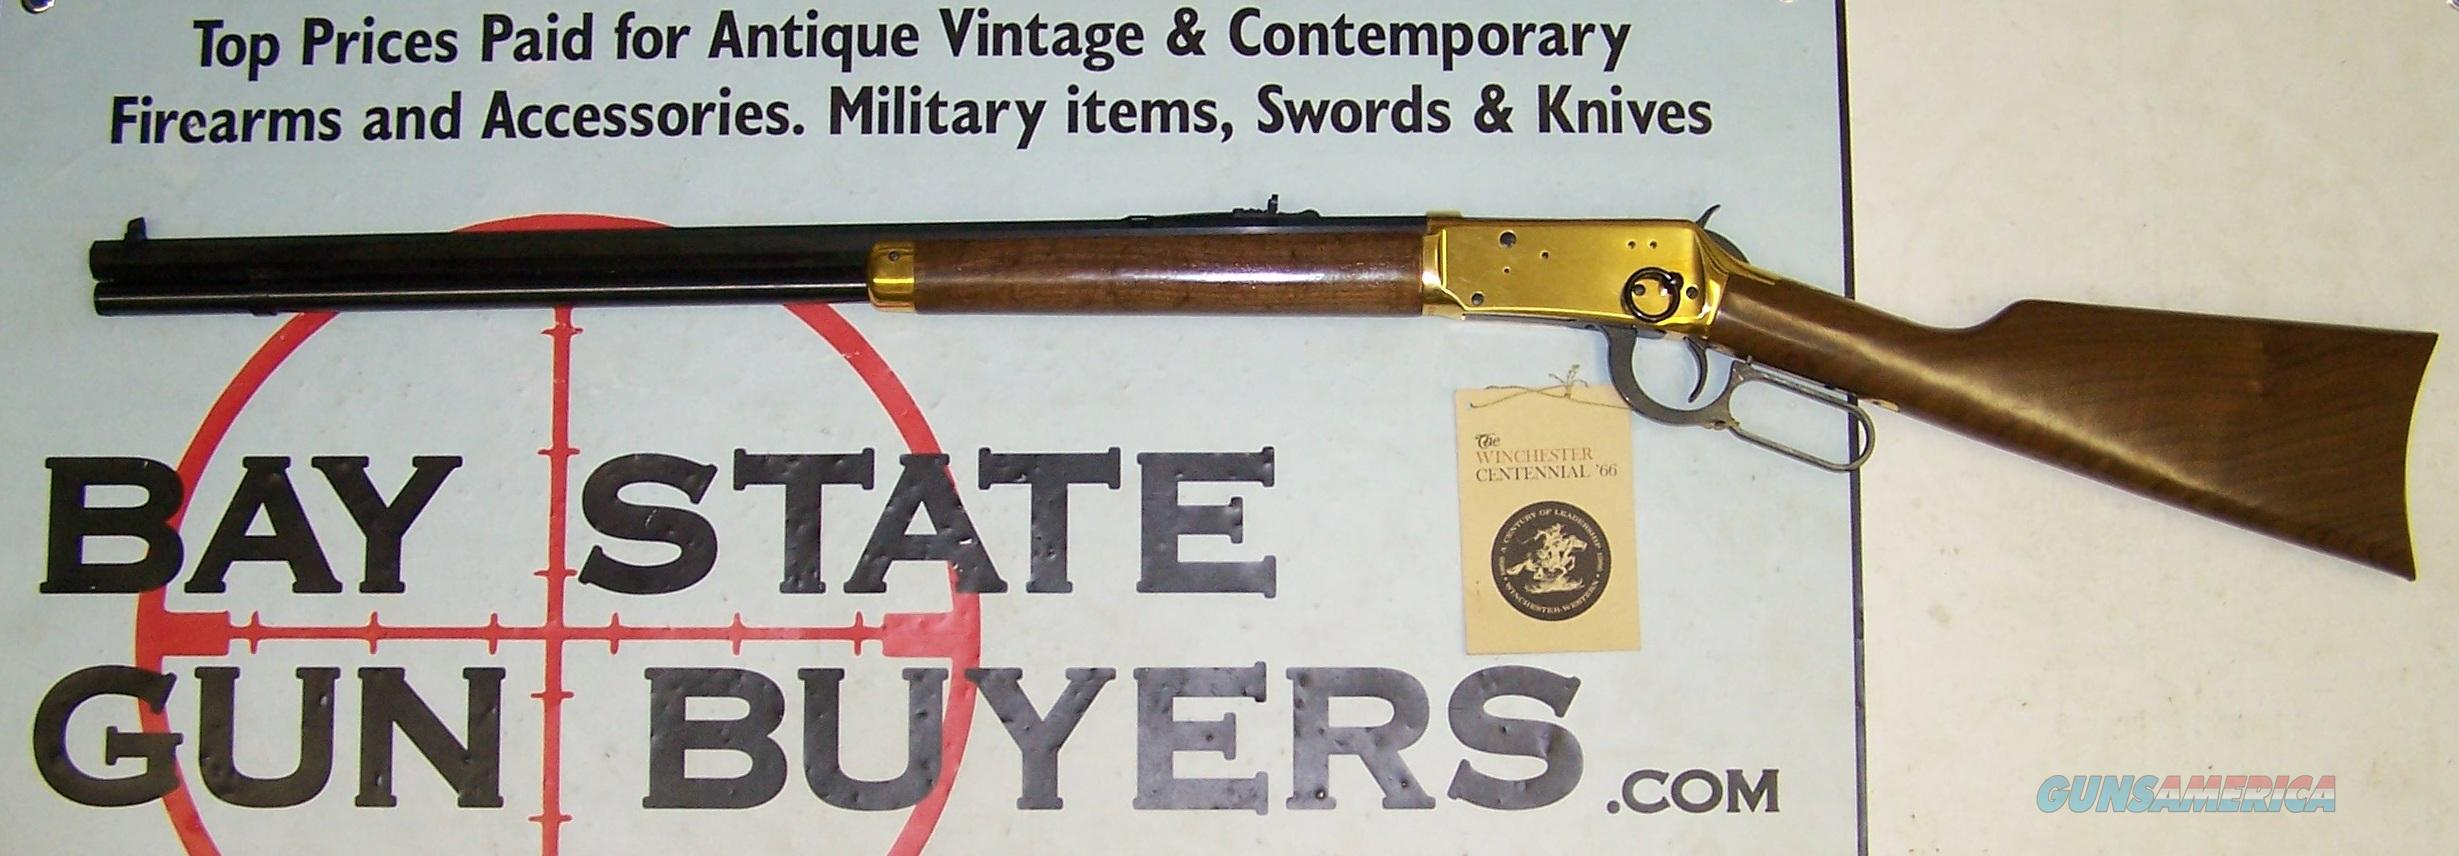 Winchester CENTENNIAL 66' Saddle Ring Rifle - BOX & PAPERS  Guns > Rifles > Winchester Rifle Commemoratives